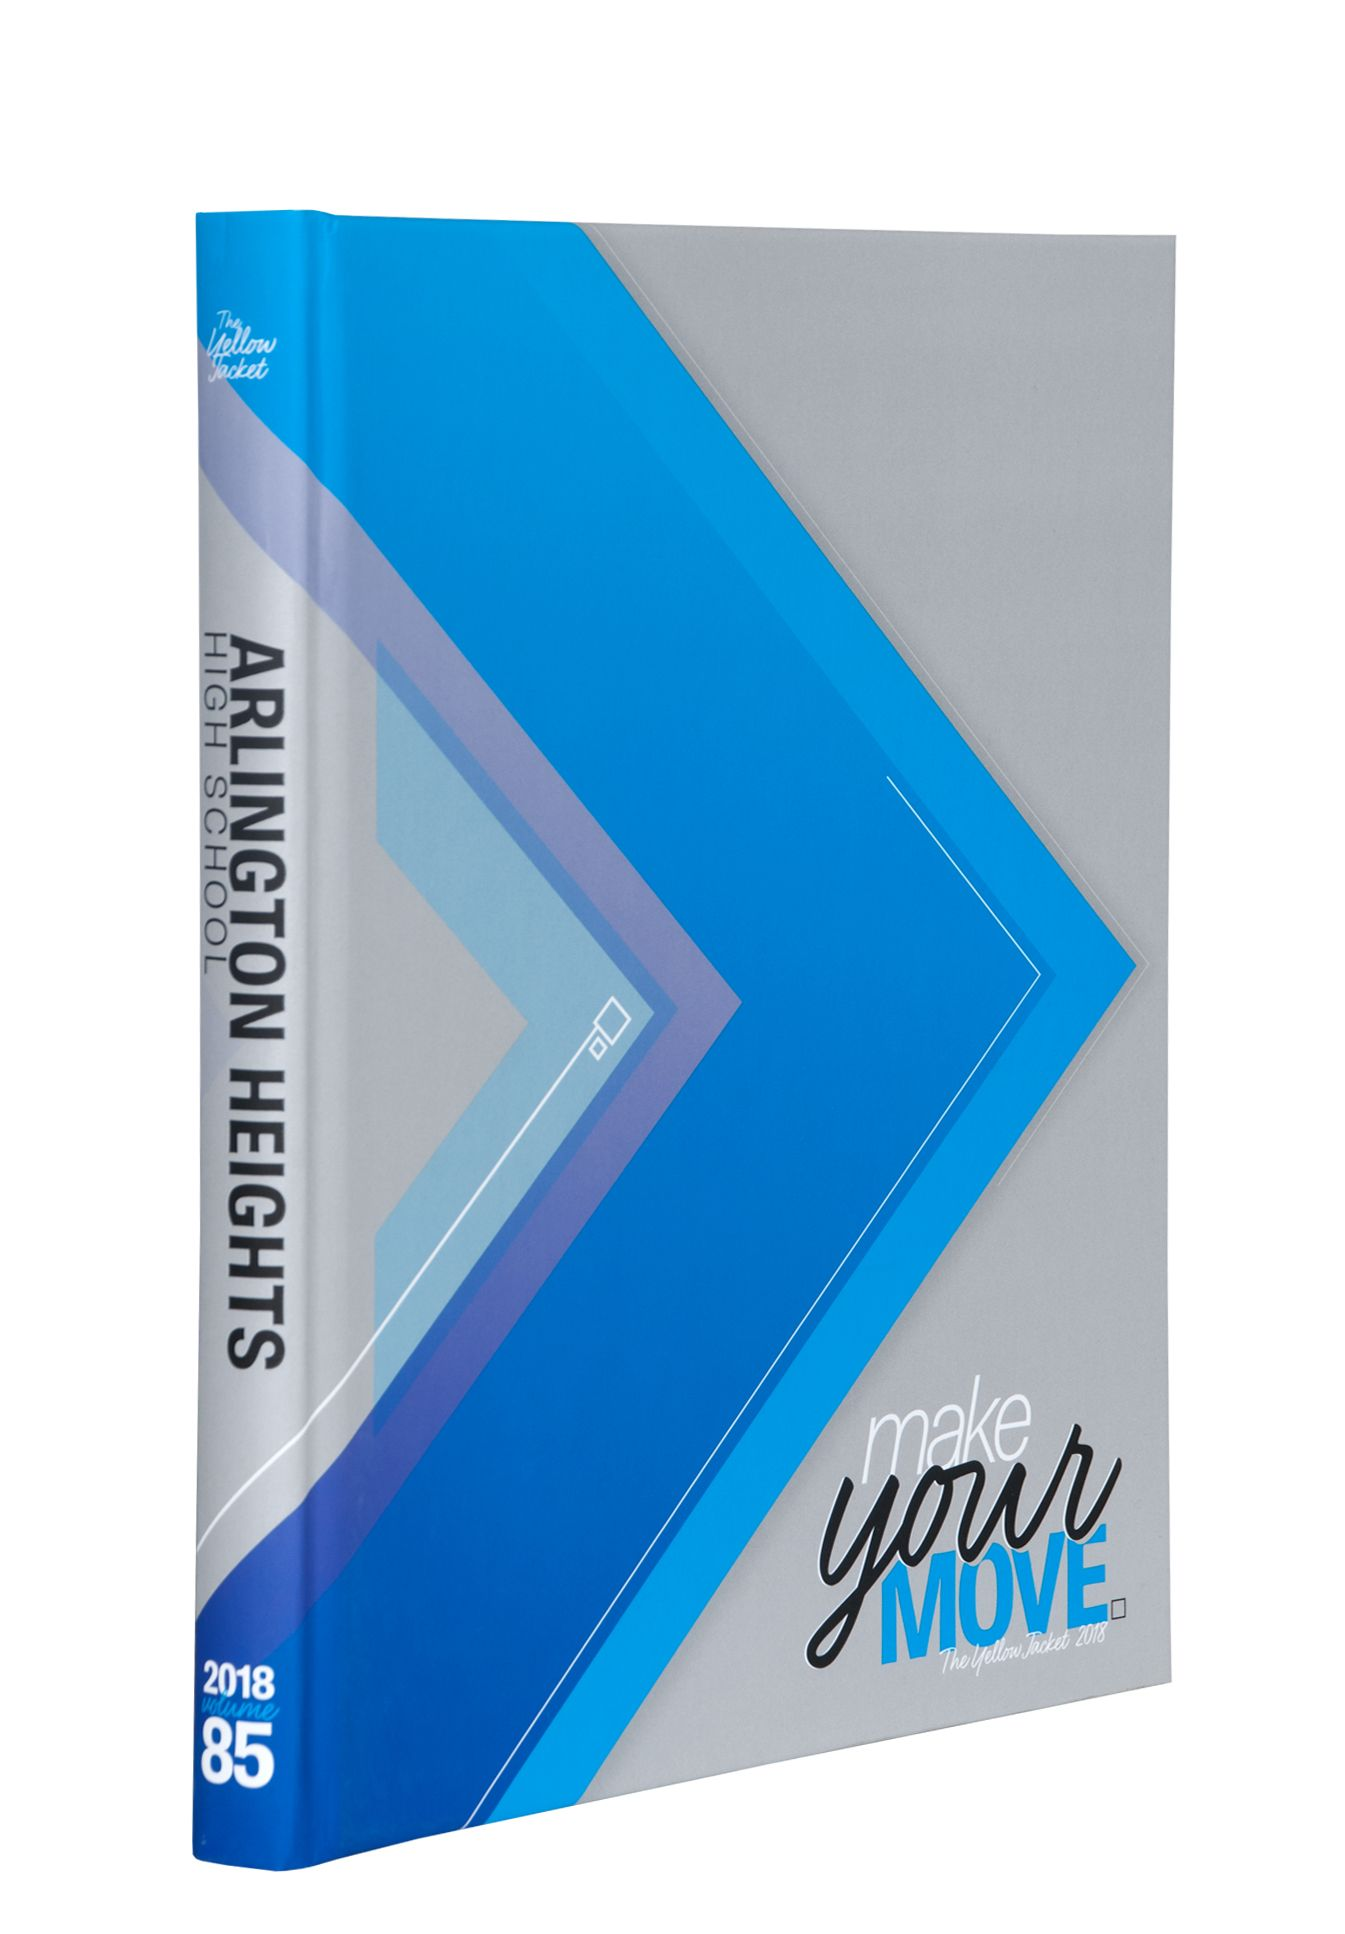 Arlington Heights High School Fort Worth Tx Soft Touch Laminate With Air Texture On Gray Background And Debossed Theme Phrase Yearbook Covers Yearbook Cover